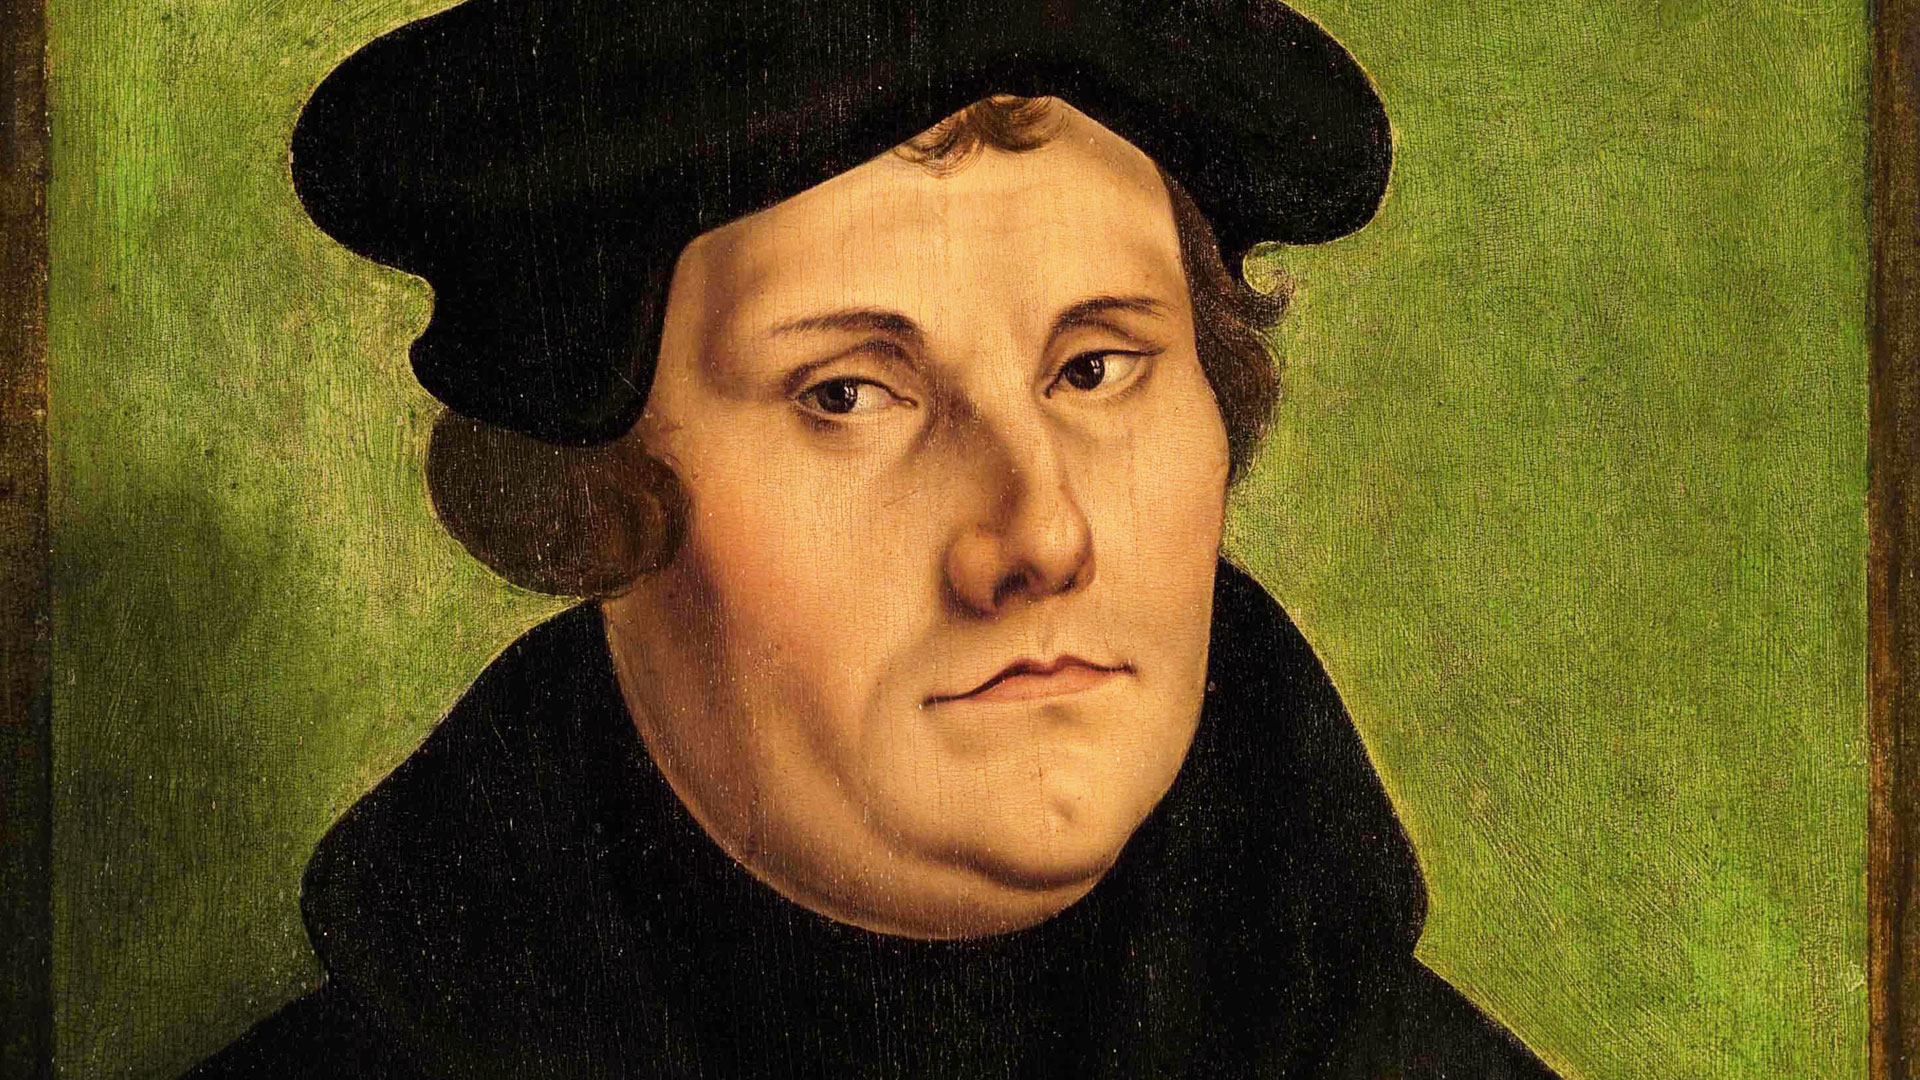 a biography of martin luther the famous reformant German theologian, inspired the protestant reformation british broadcasting corporation home accessibility links skip to content martin luther, c1520.